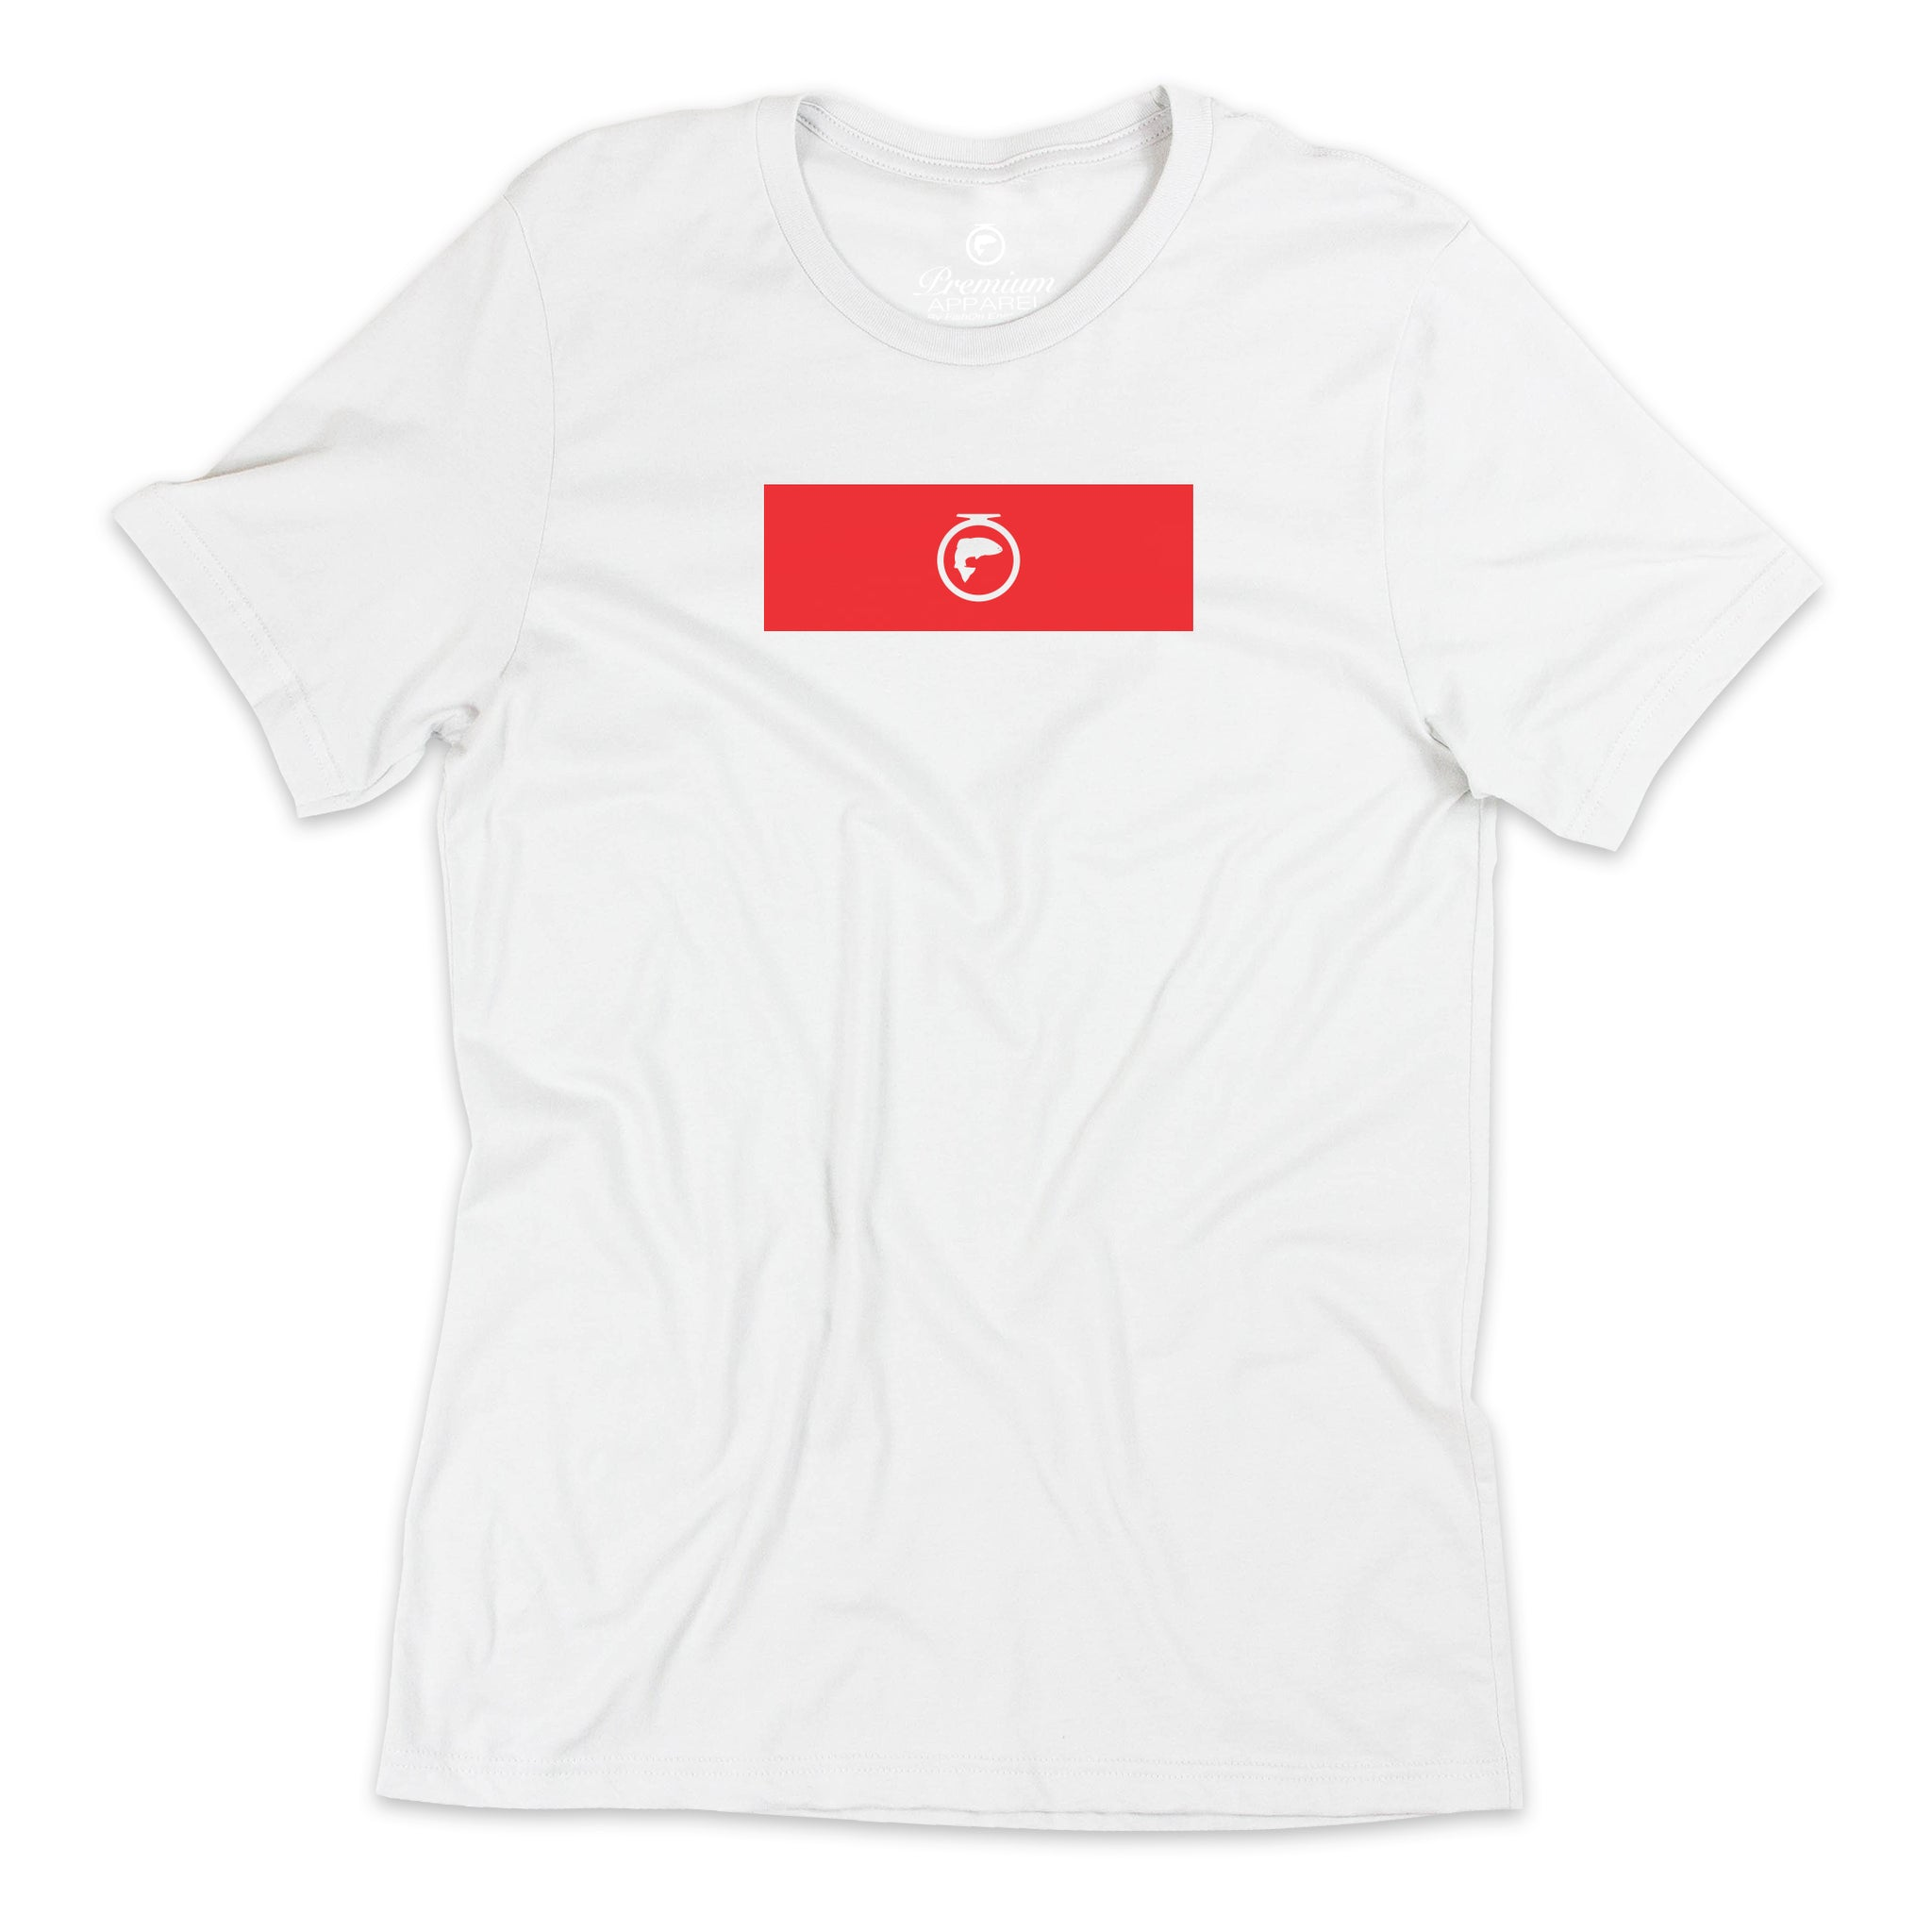 Ultimate Short Sleeve Tee